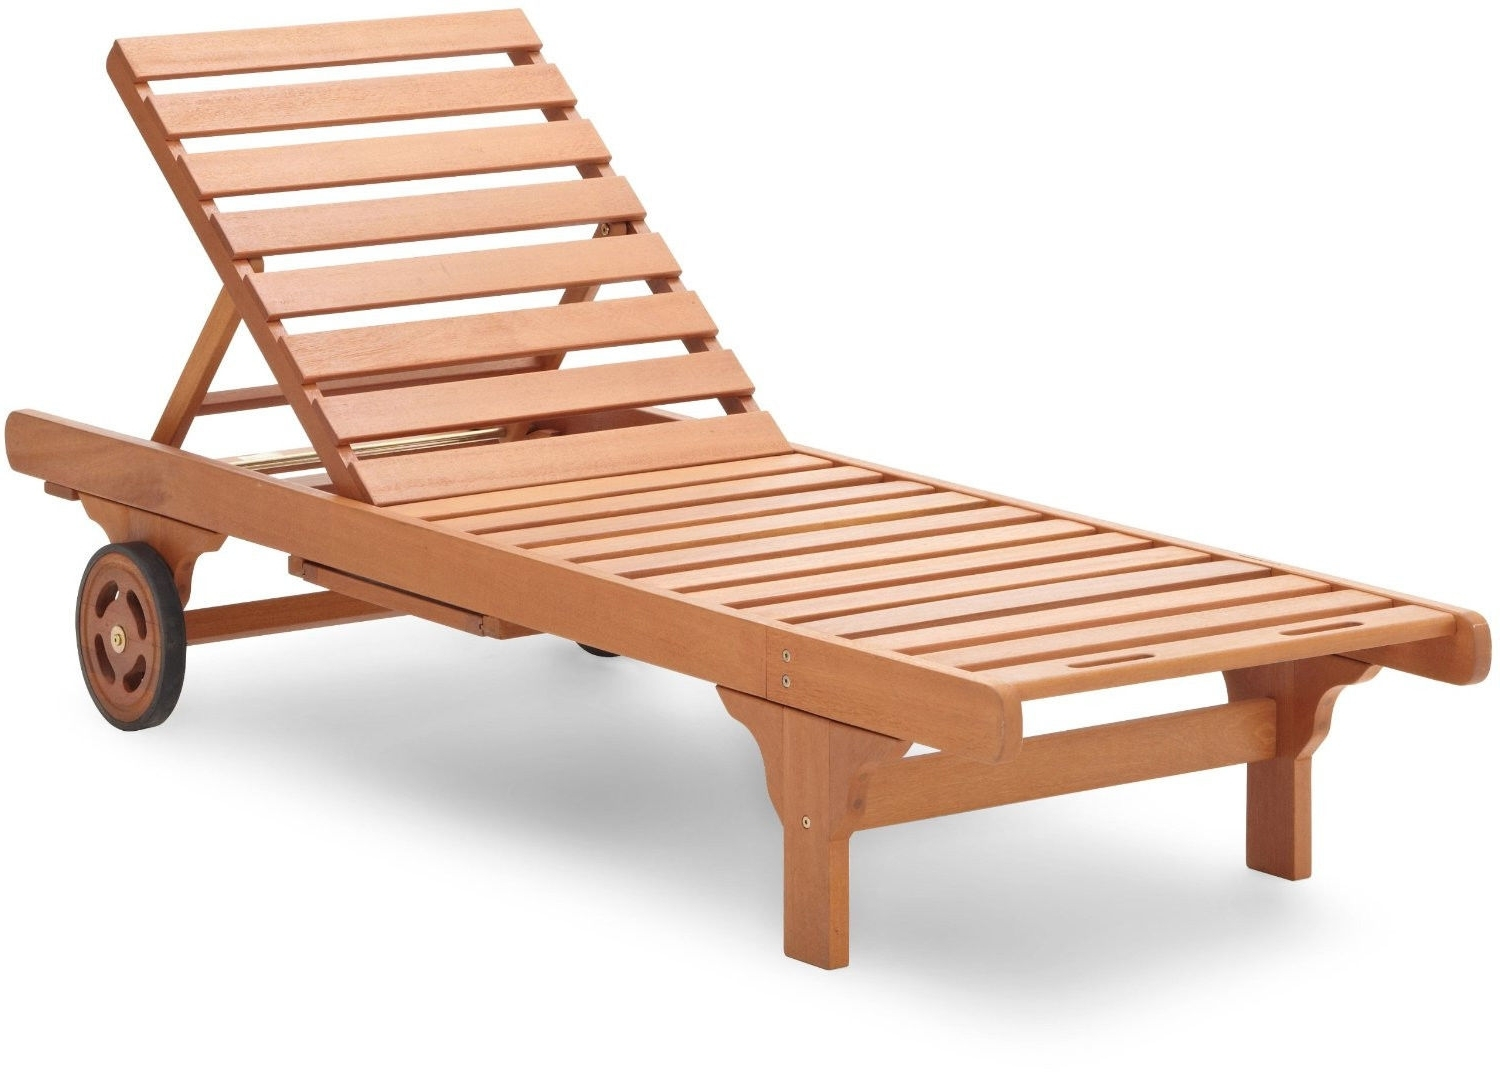 Most Current Wooden Chaise Lounge – Patio Chaise Lounge Ikea, Outdoor Chaise Inside Diy Outdoor Chaise Lounge Chairs (View 11 of 15)